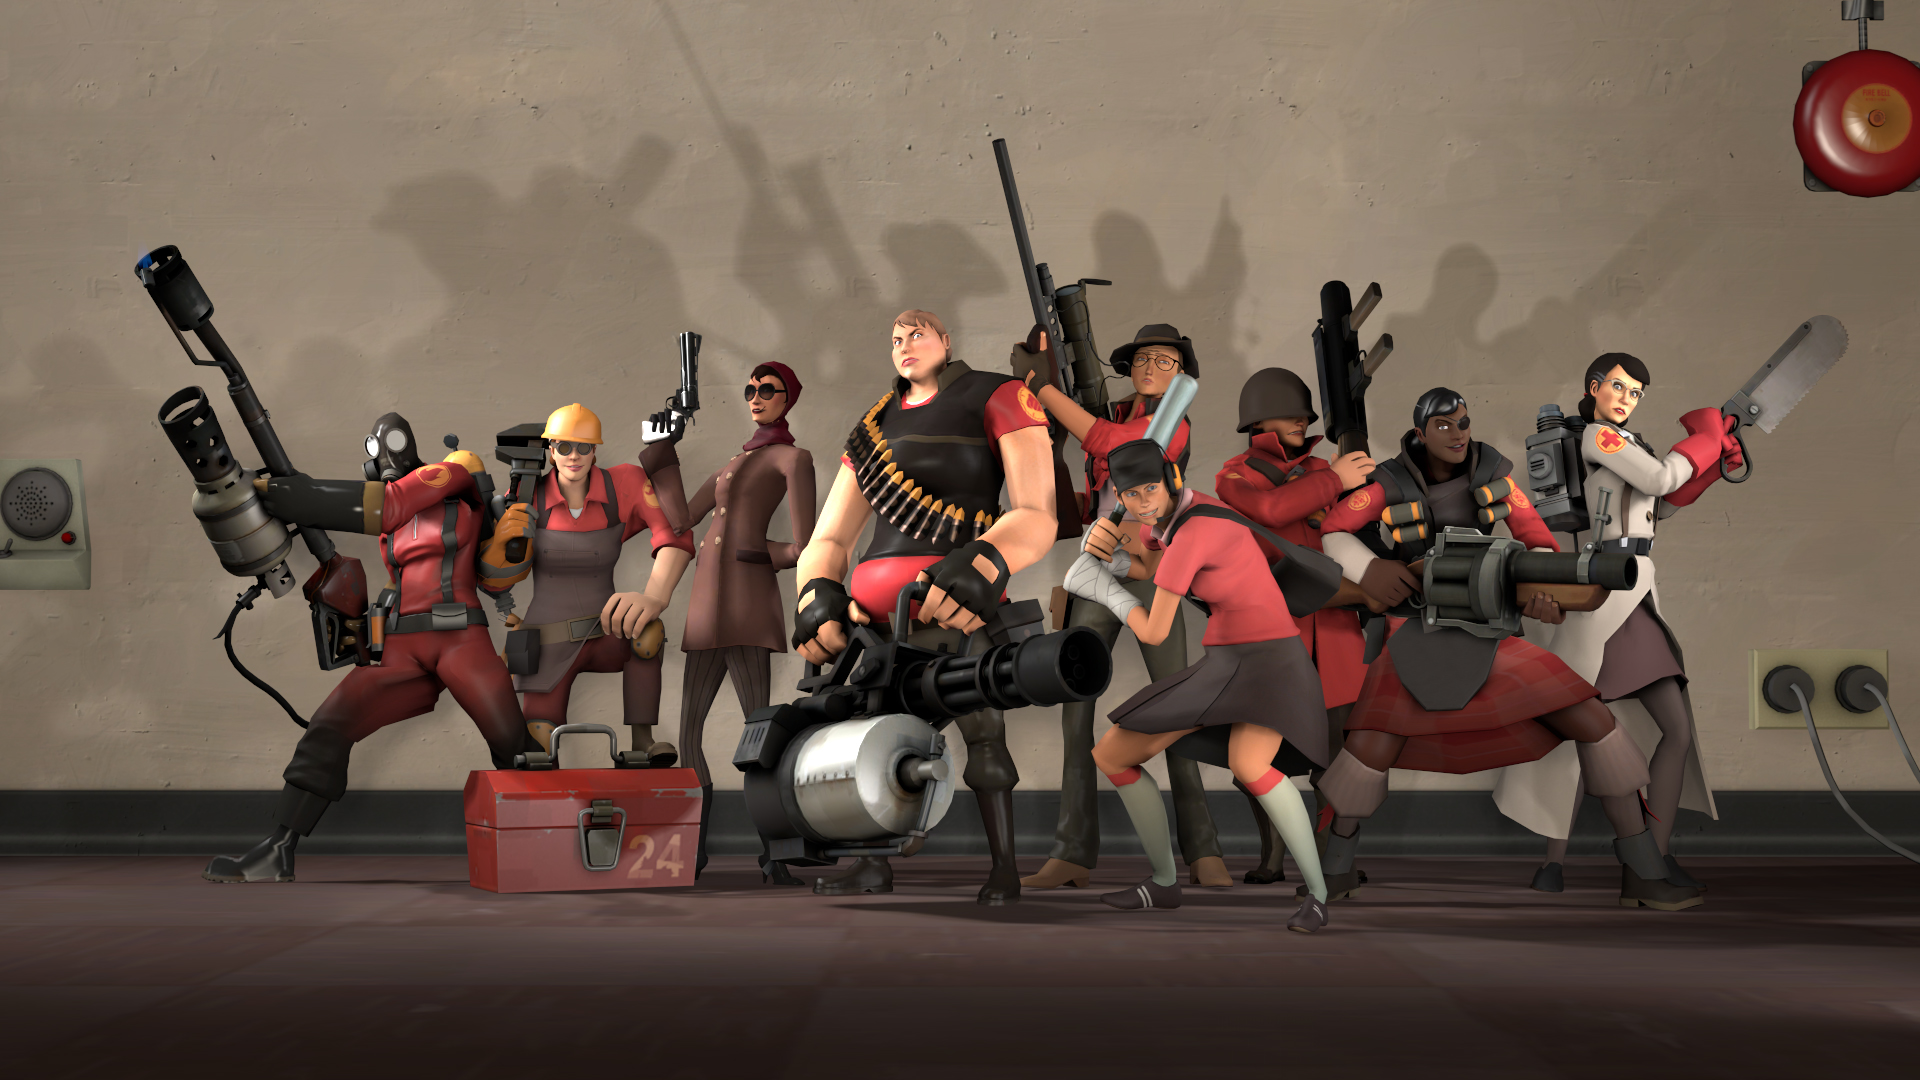 meet team fortress line them up and poke